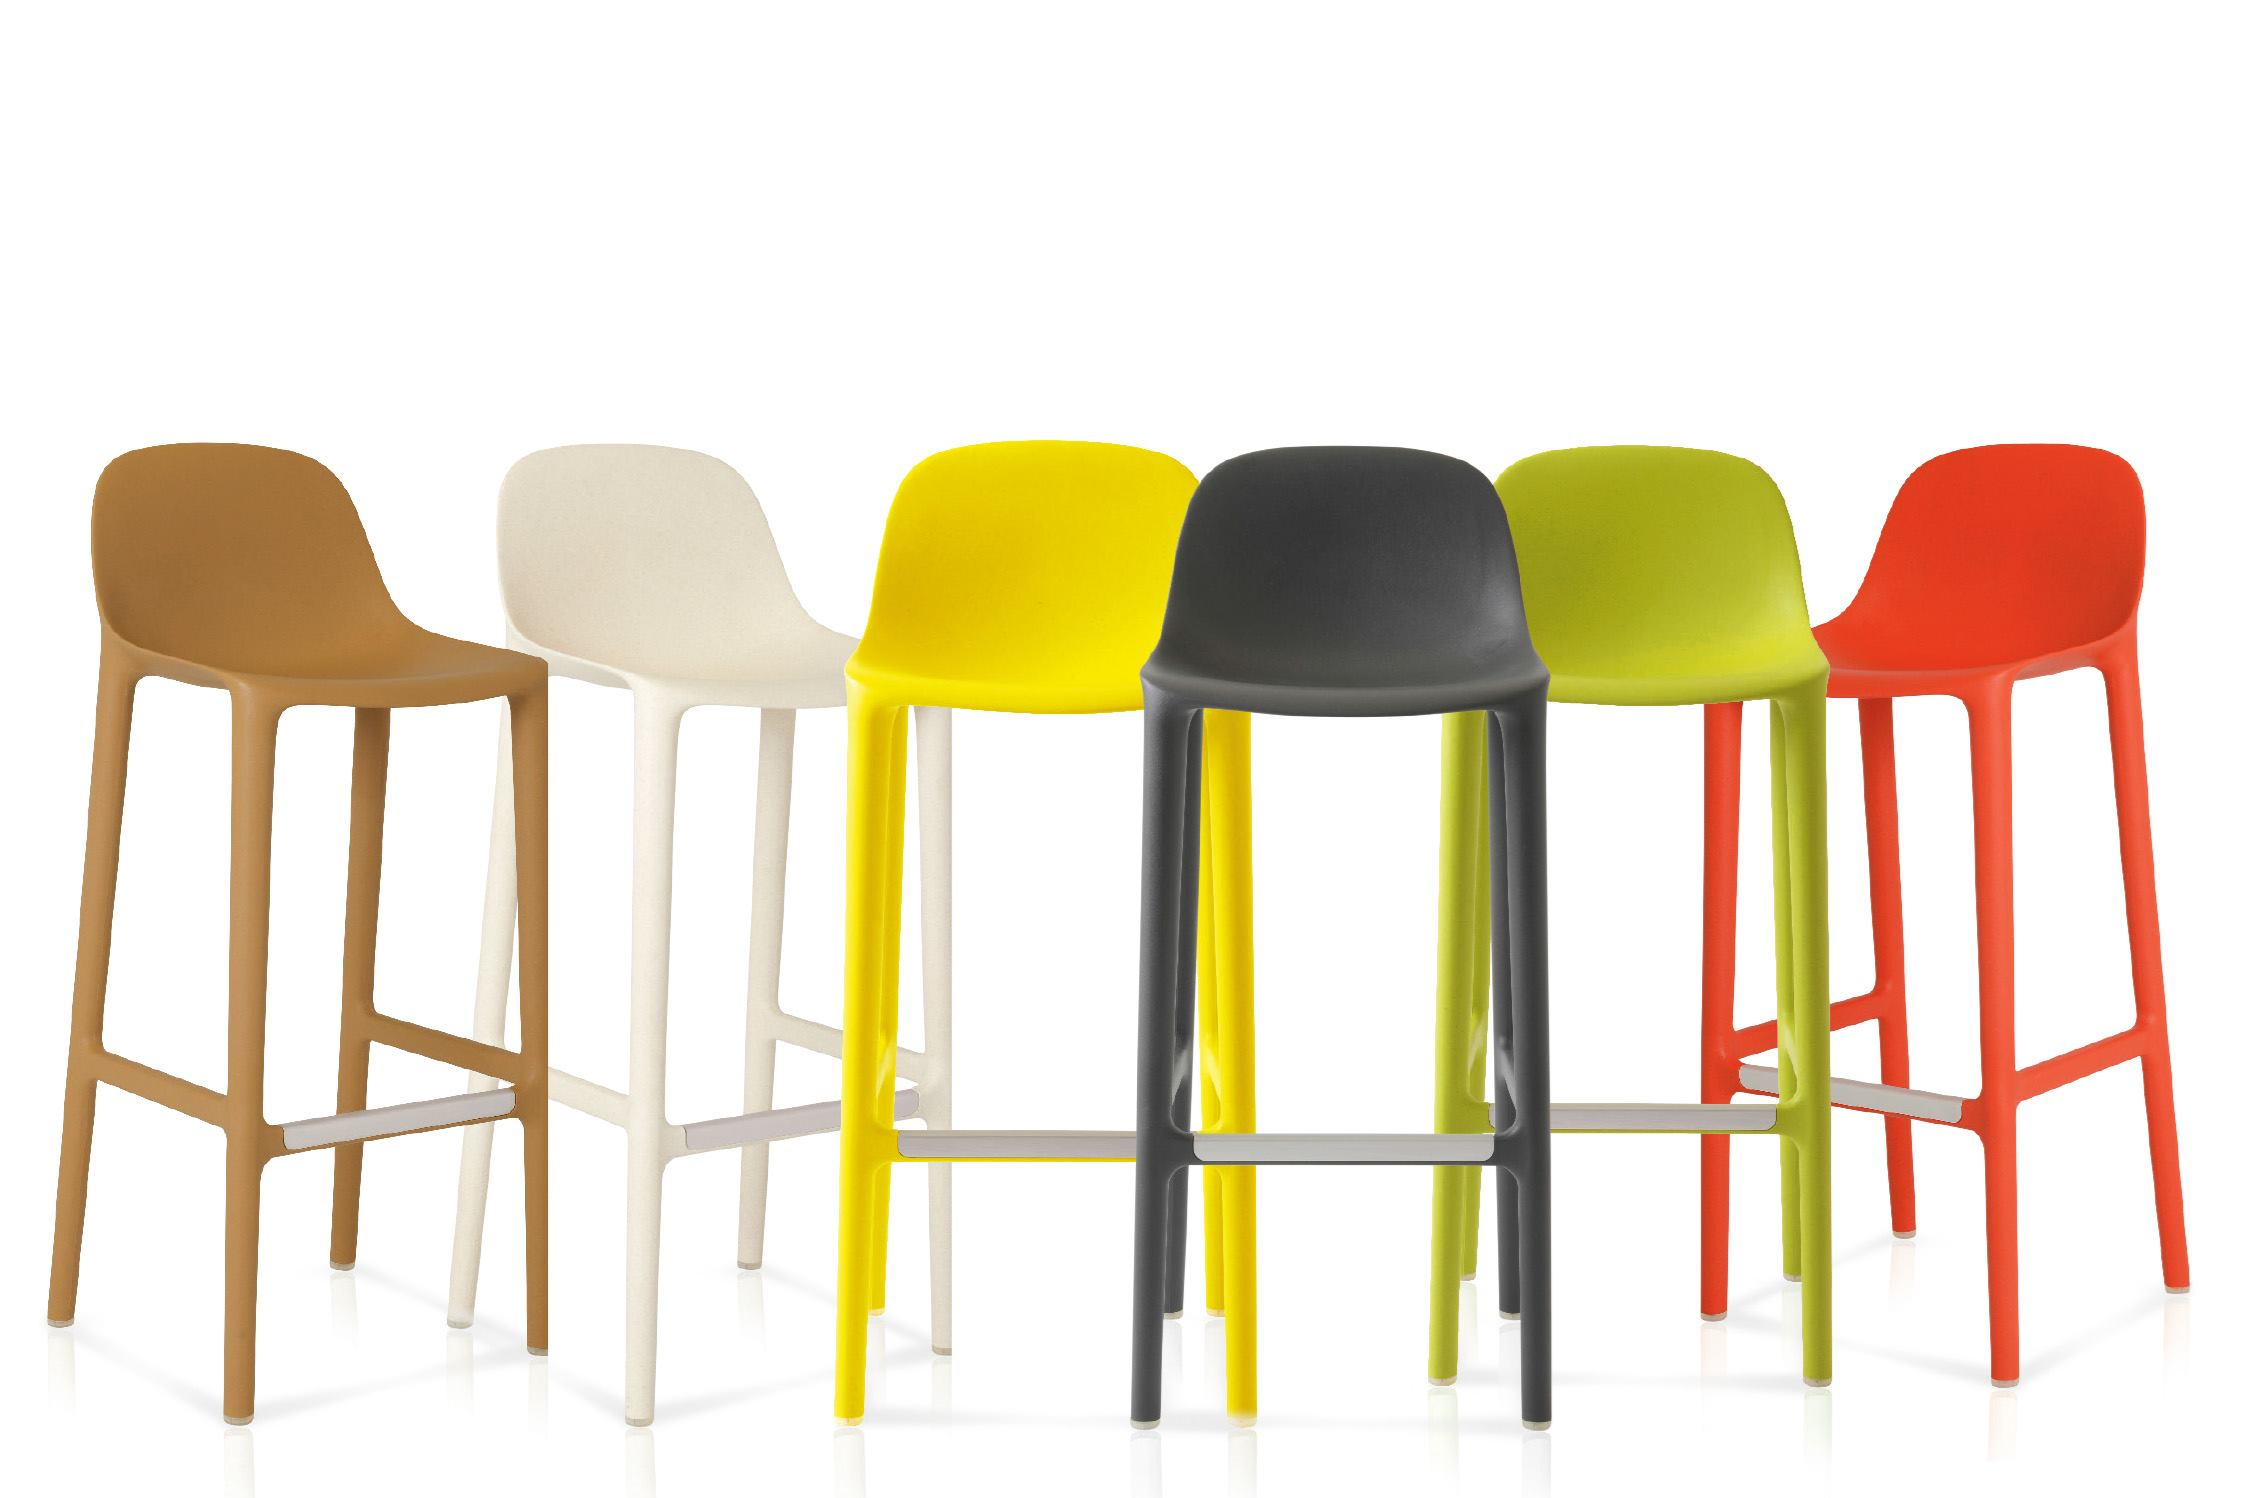 Eleven Hot Seats from ICFF 2014 Architect Magazine